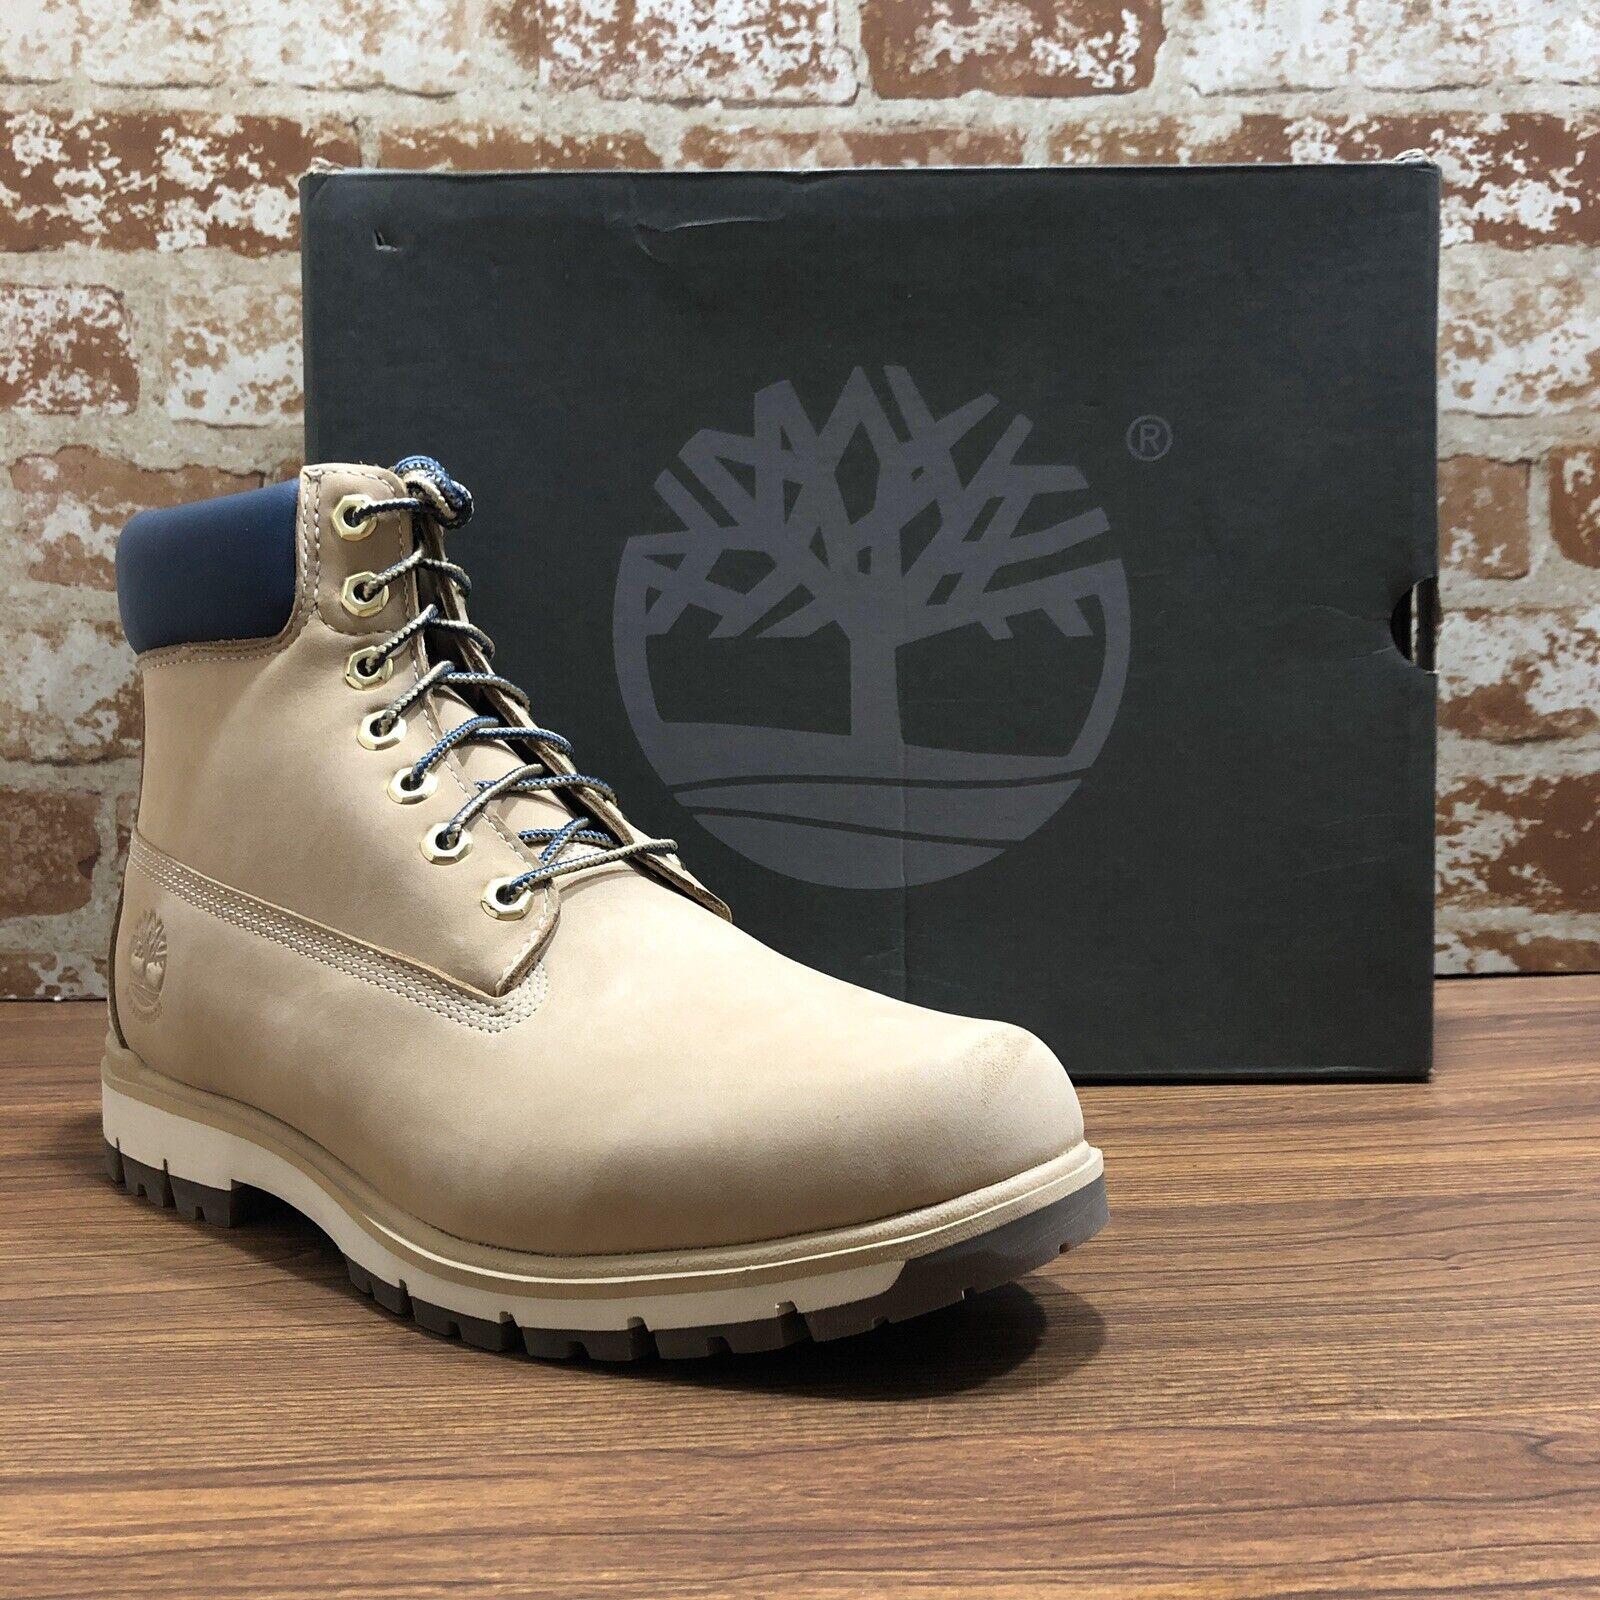 corto como resultado Pasado  TIMBERLAND MEN RADFORD 6-INCH LIGHTWEIGHT WATERPROOF BOOTS STYLE A1PC8  SIZES 9.5 for sale online